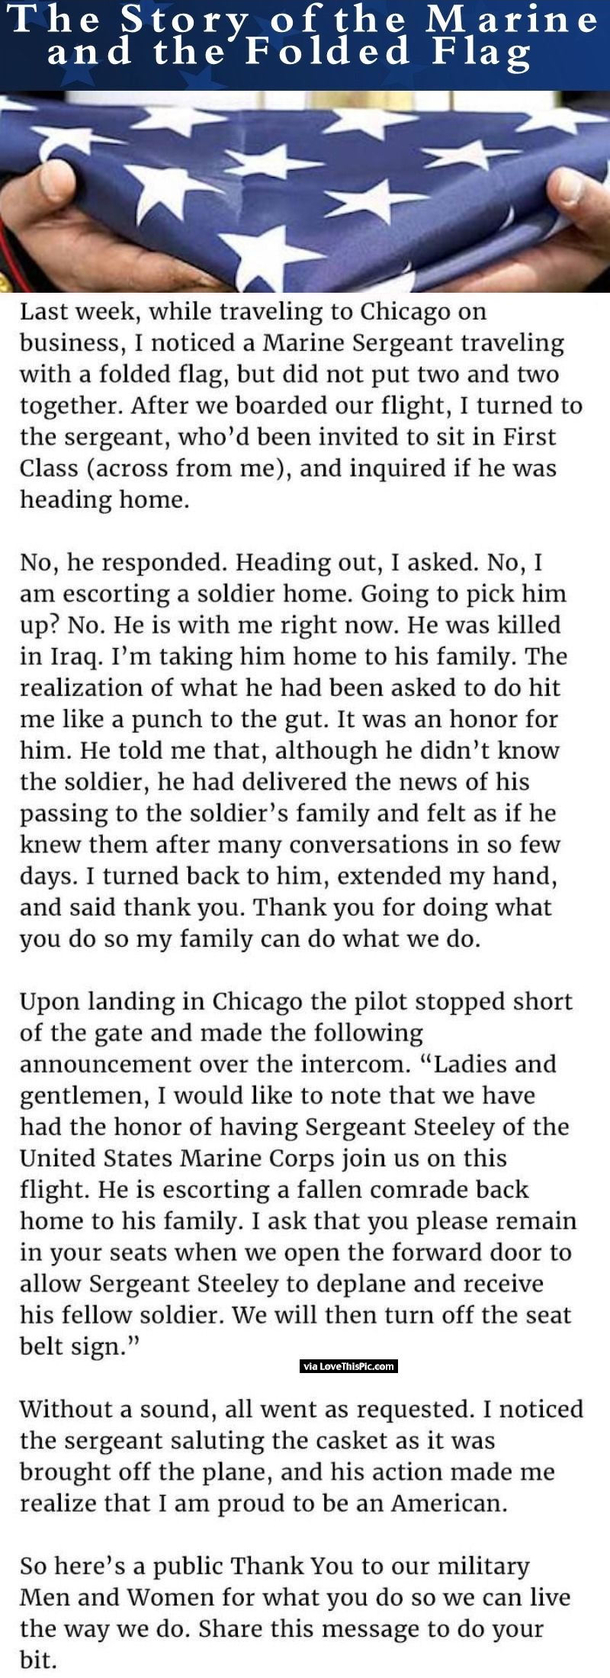 The Story Of The Marine And The Folded Flag